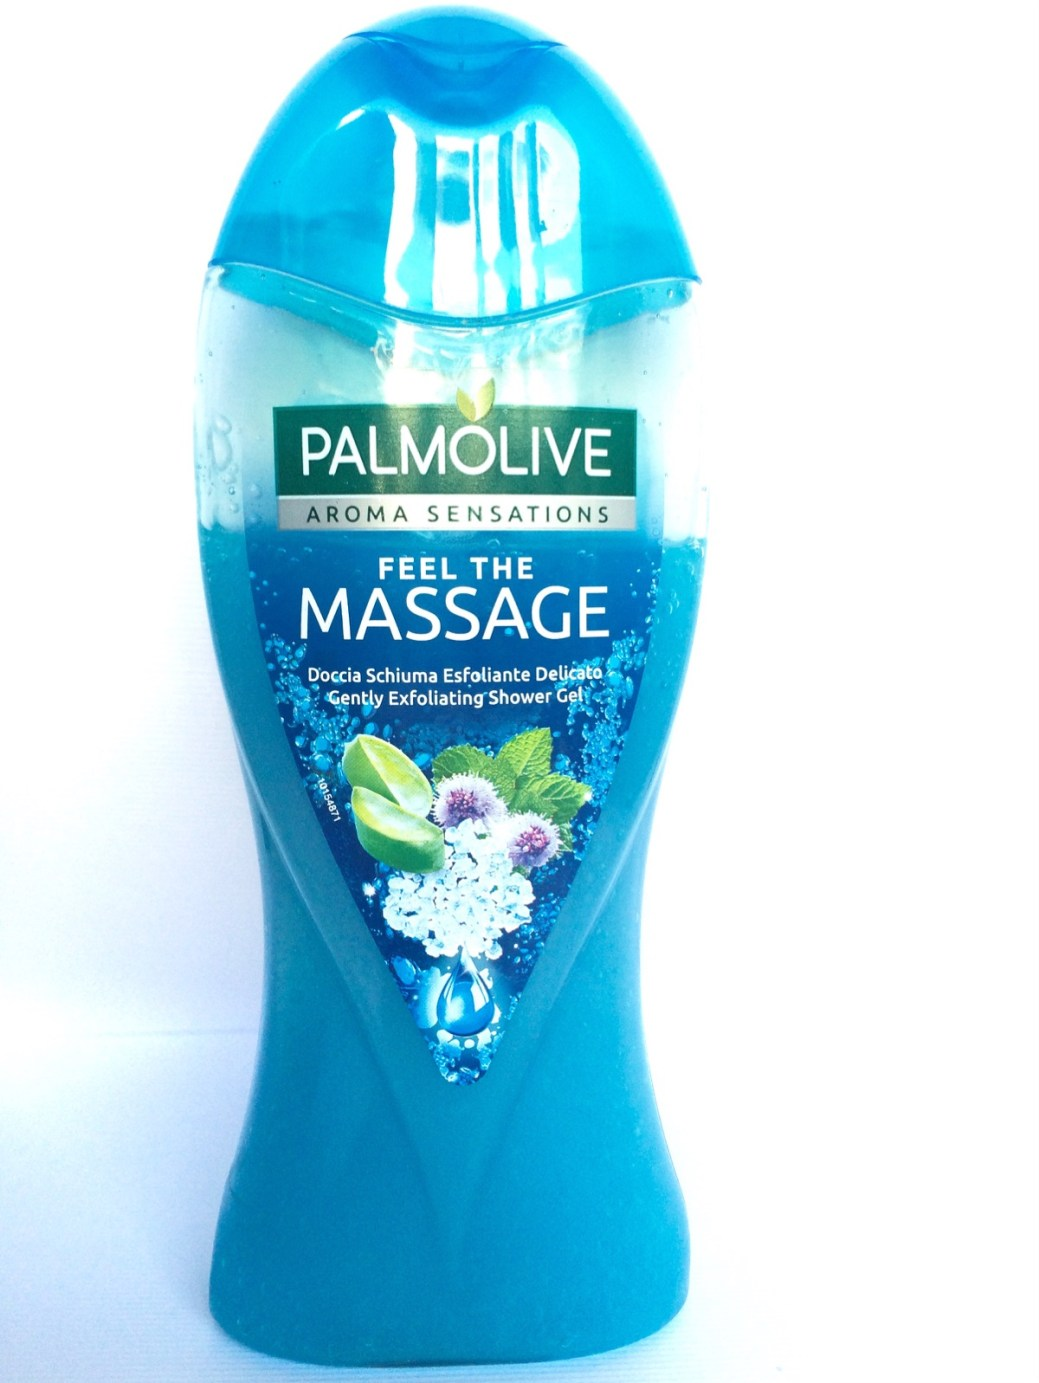 Palmolive Aroma Sensations Feel The Massage Gently Exfoliating Shower Gel Review 1